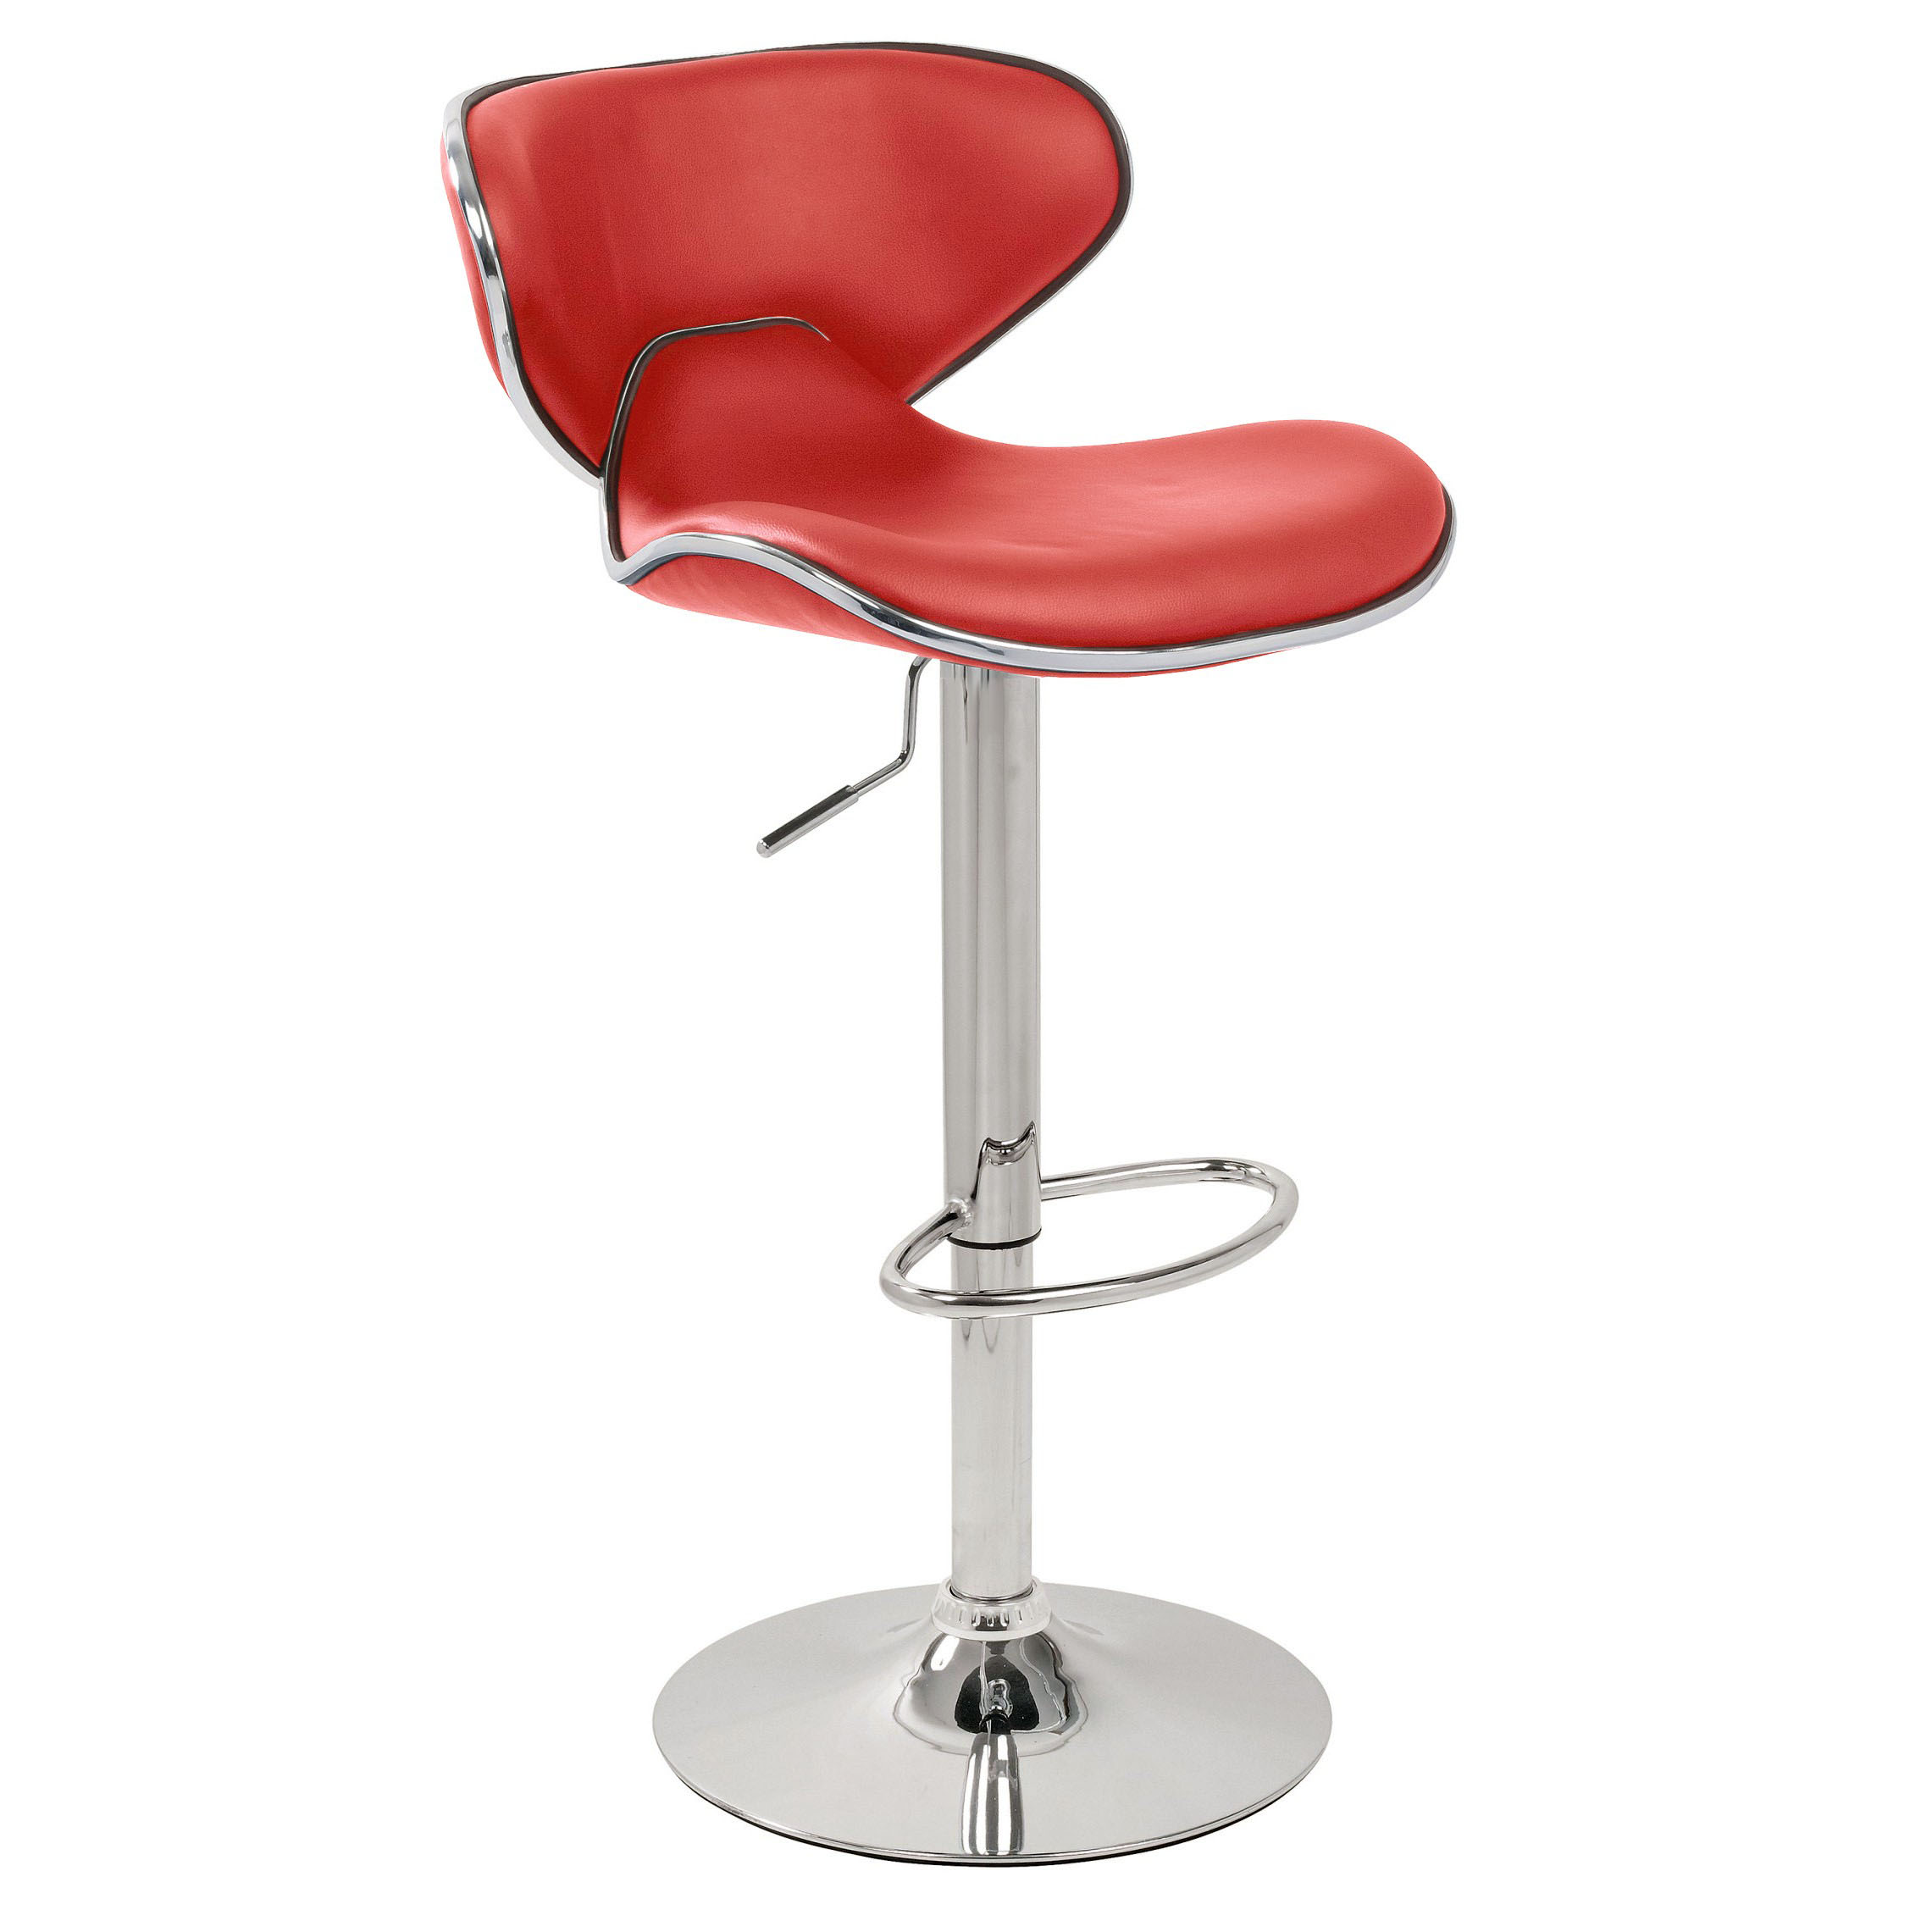 Carcaso Bar Stool - Red